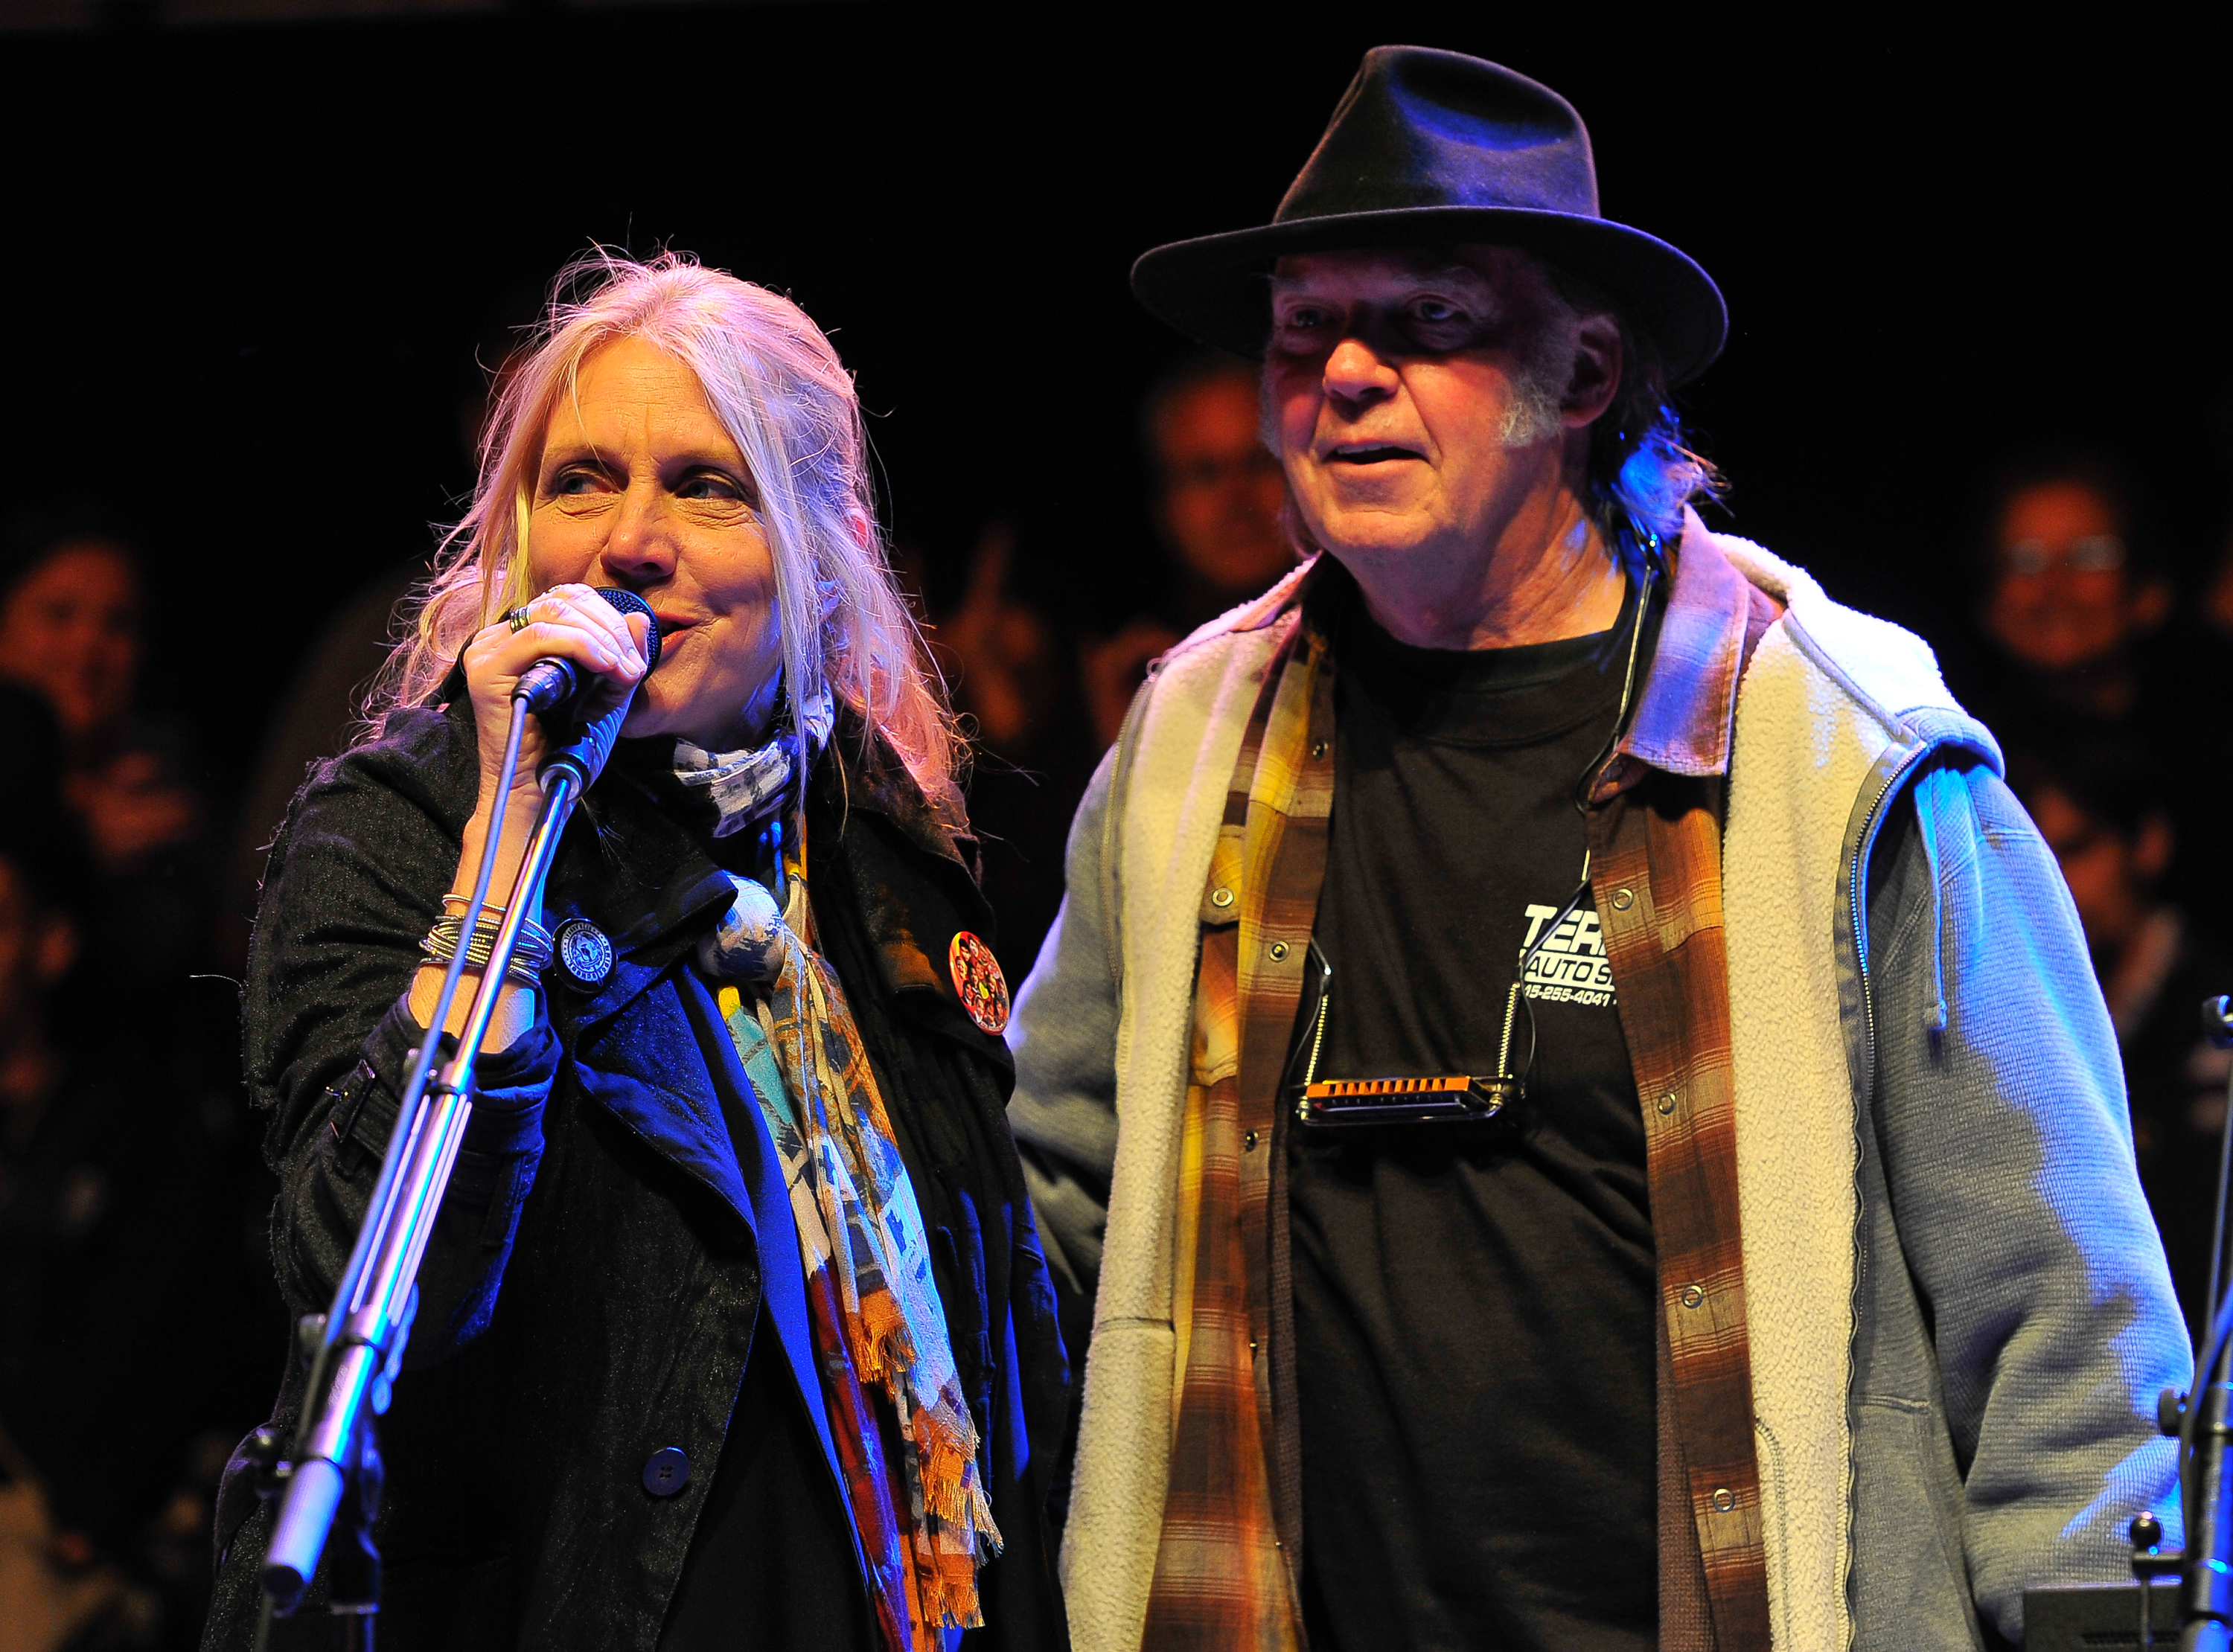 MOUNTAIN VIEW, CA - OCTOBER 27: Pegi Young and Neil Young (L-R) perform on Day 2 of the 27th Annual Bridge School Benefit con